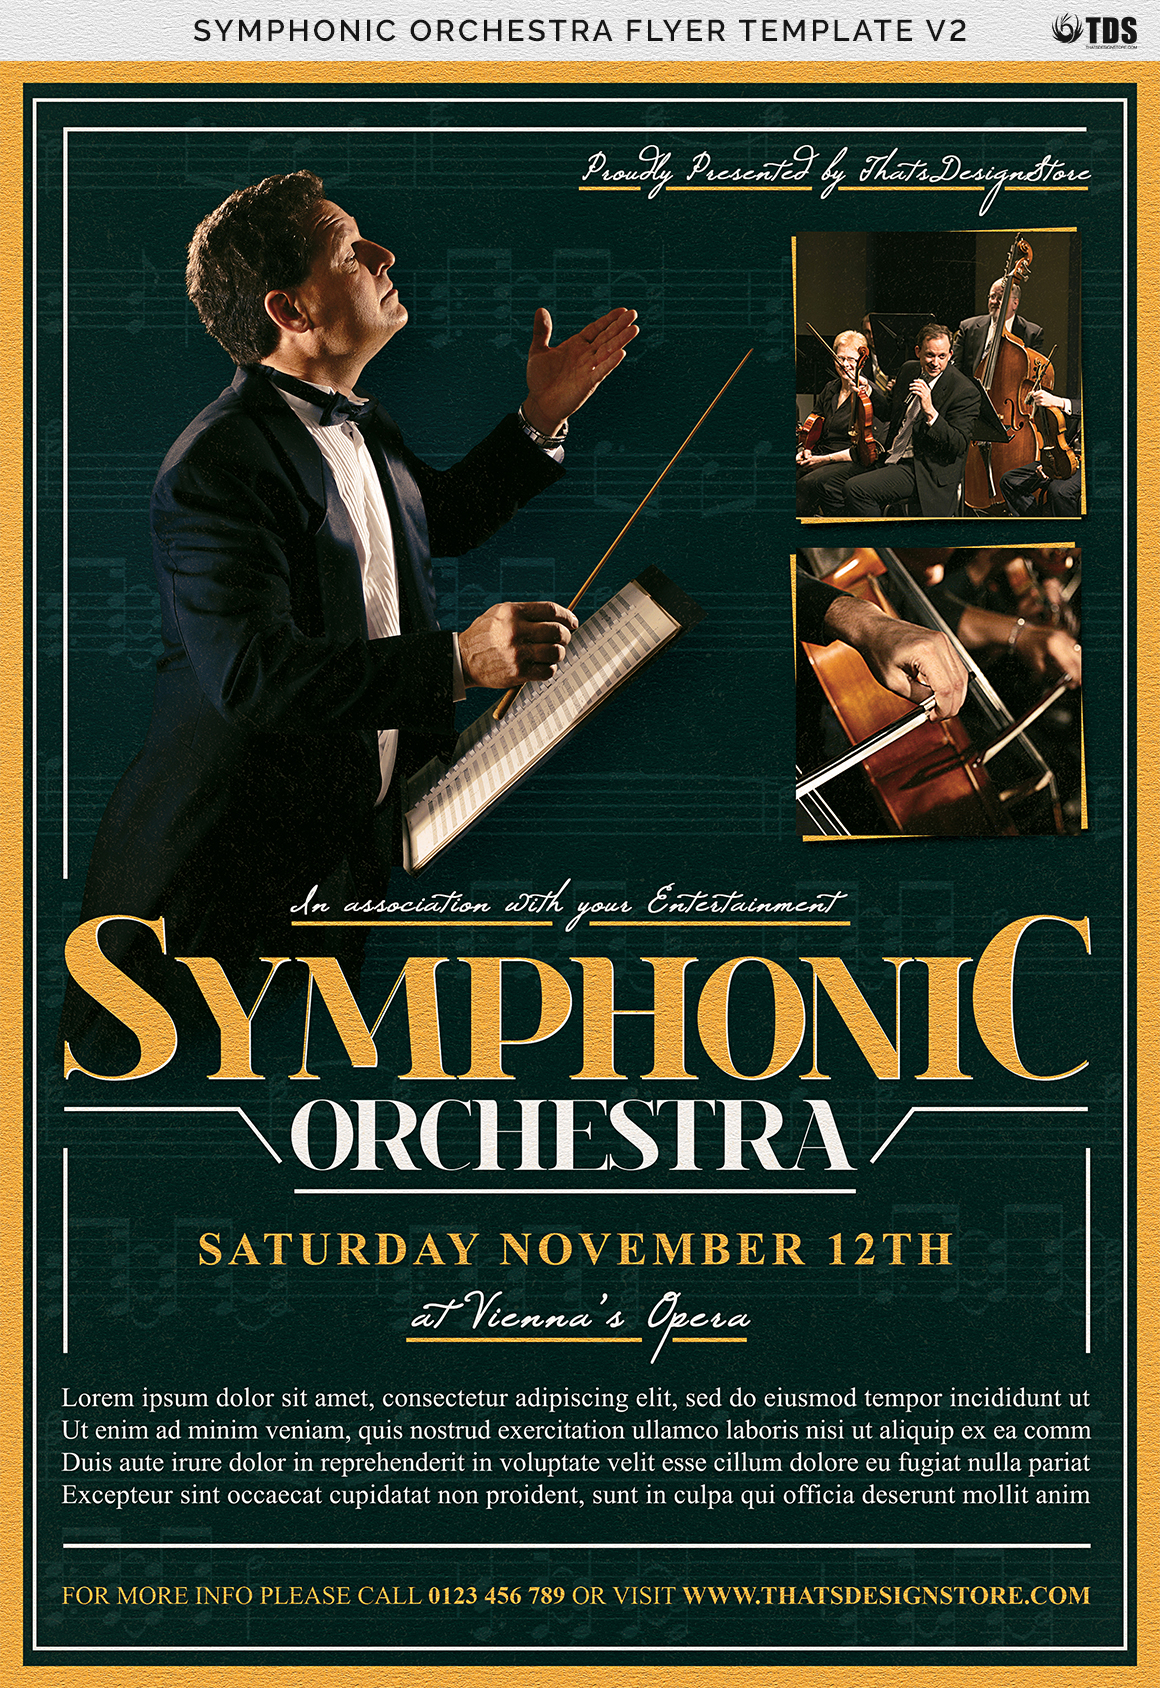 Symphonic Orchestra Flyer Template V2 example image 7